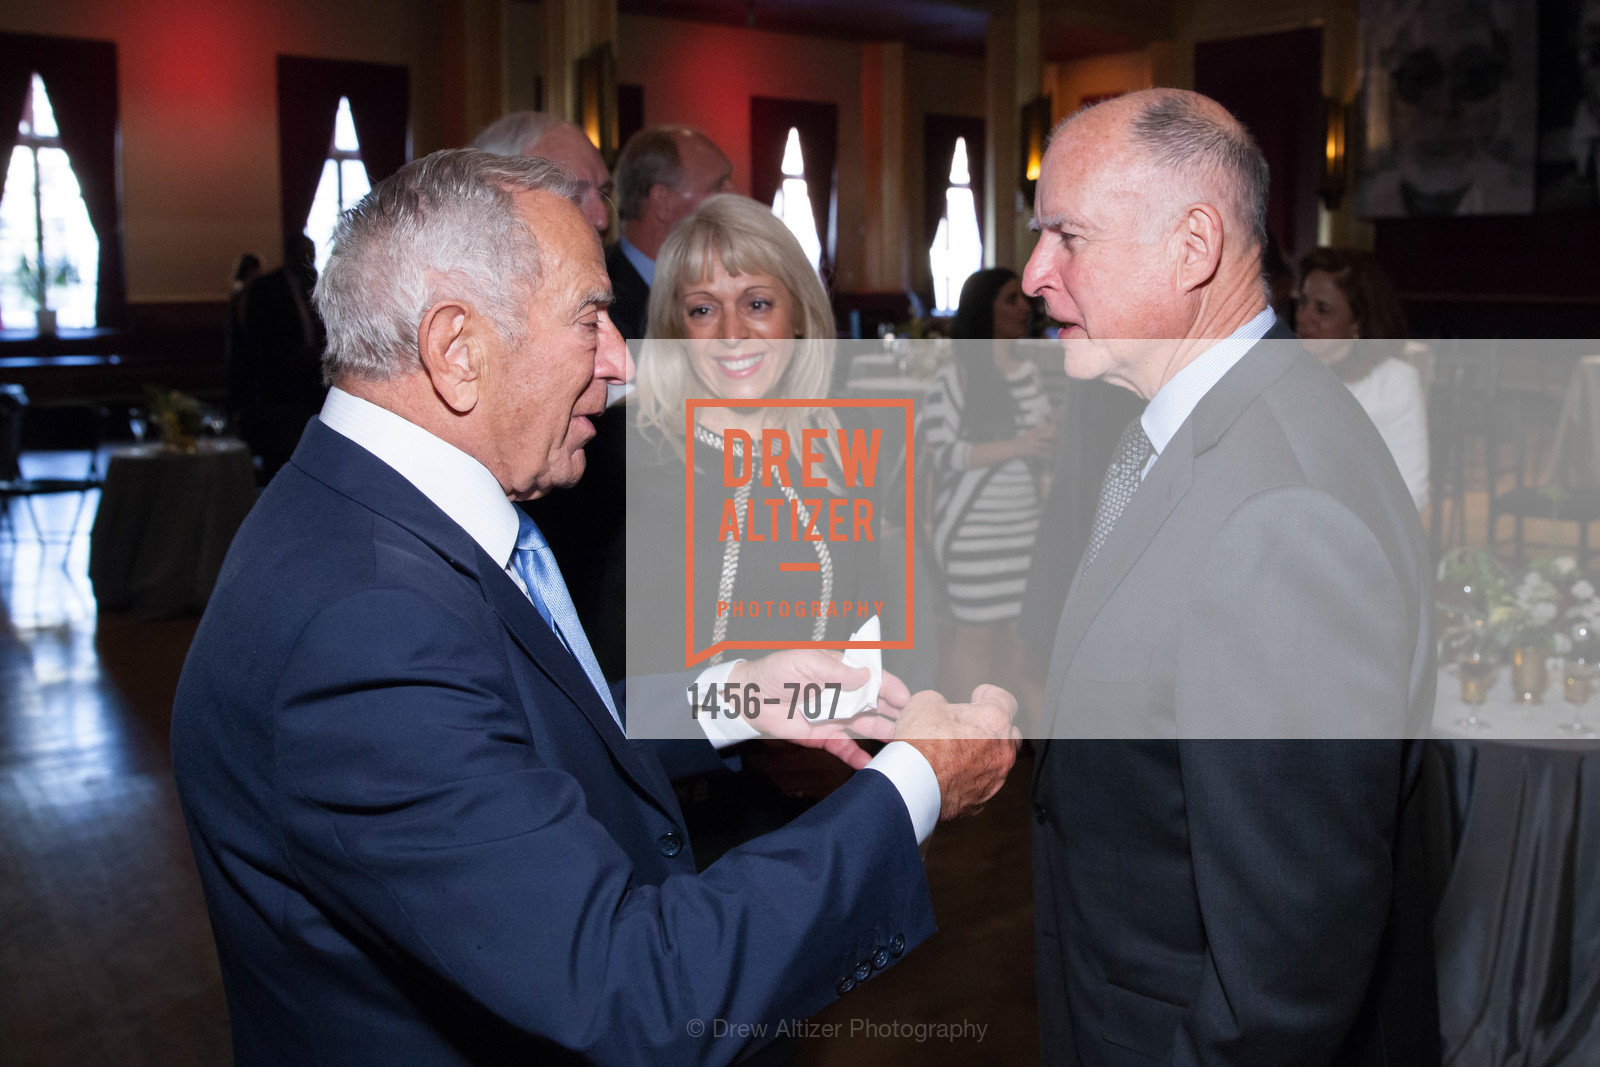 Milan Panic, Alexandra Novak, Gov. Jerry Brown, OAKLAND SCHOOL FOR THE ARTS Gala 2015 with Governor Jerry Brown, US, May 7th, 2015,Drew Altizer, Drew Altizer Photography, full-service agency, private events, San Francisco photographer, photographer california